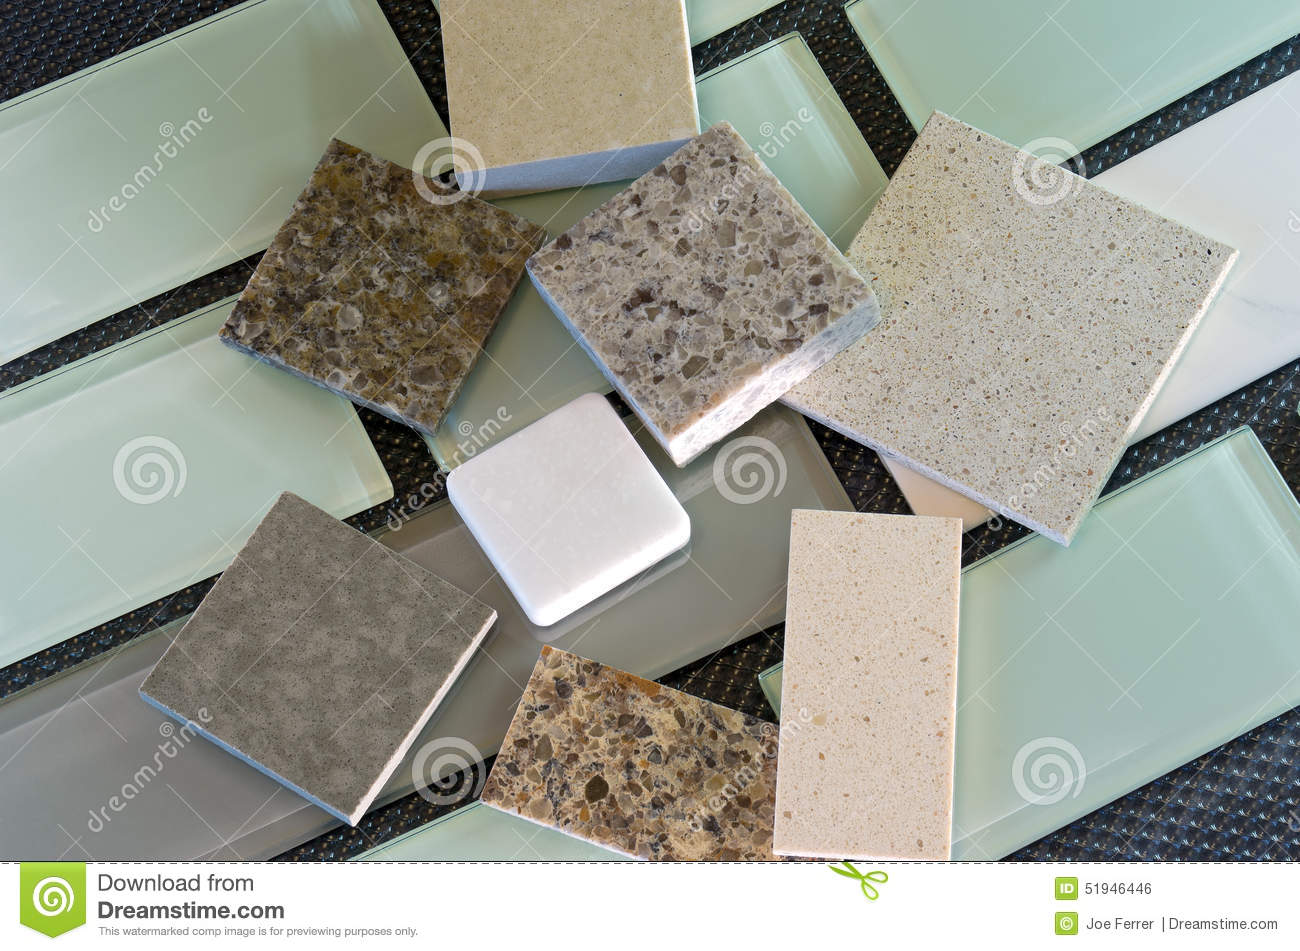 Backsplash Tiles And Quartz Countertop Samples Stock Photo